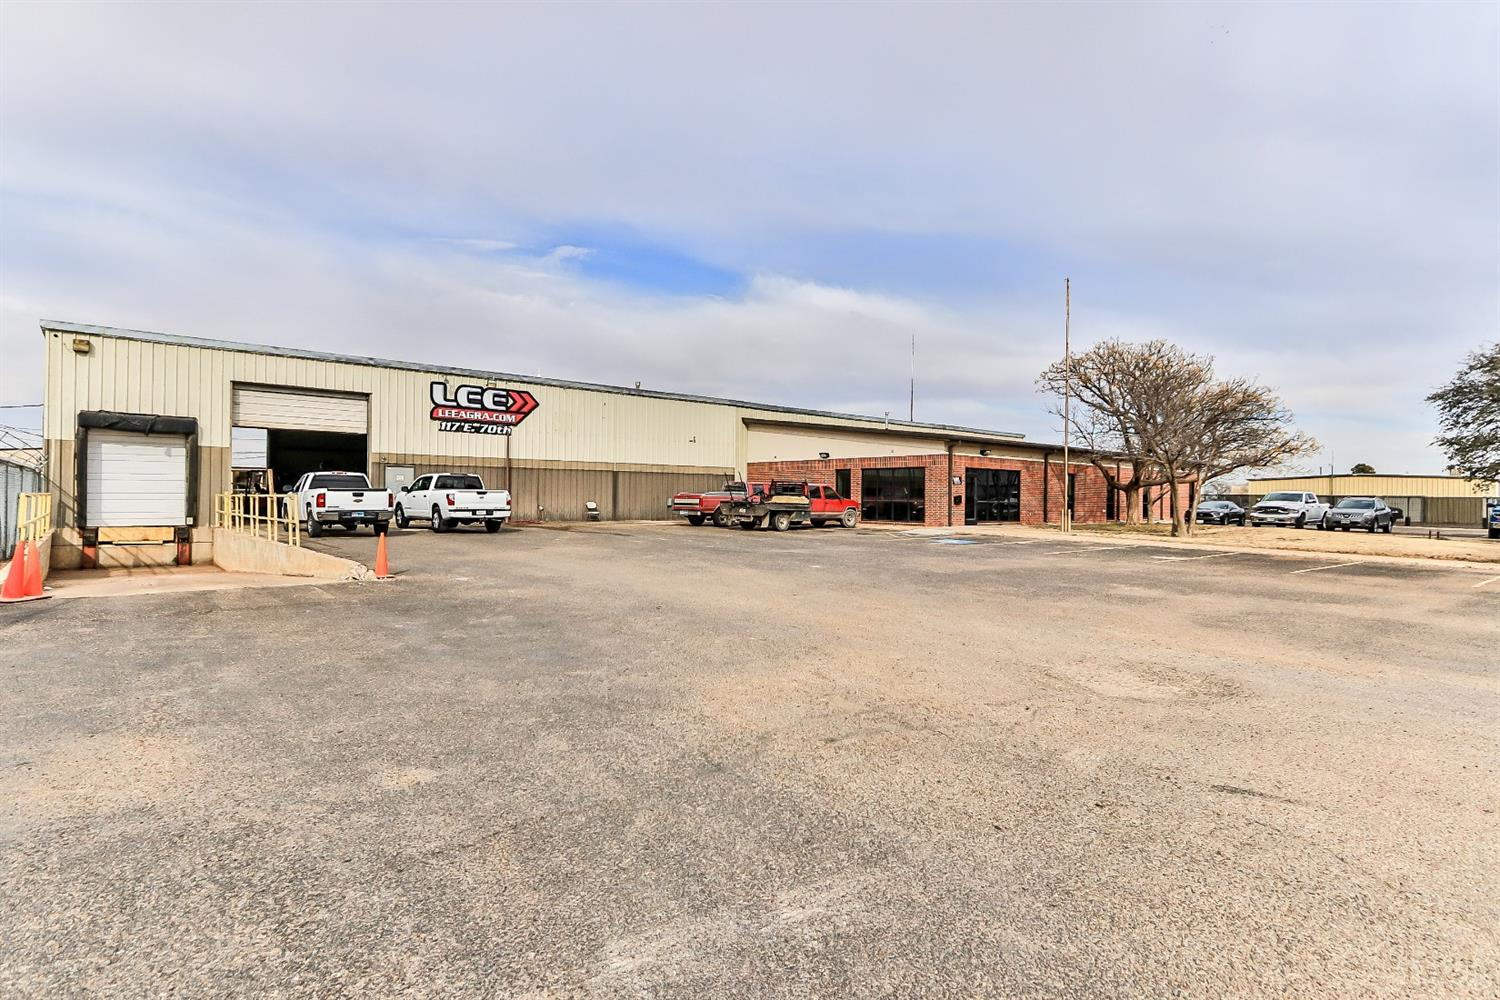 Property is located between Slaton Highway (US 84) and Loop 289, just east of I-27. Light manufacturing company is currently occupying the space, and have recently renewed their lease. Ceiling Height: 19' 5; 3 Phase 220 V - Dock High Door; New HVAC - 2017; Offices Remodeled in 2017; Roof Replaced in 2015 with High Quality Membrane Roof